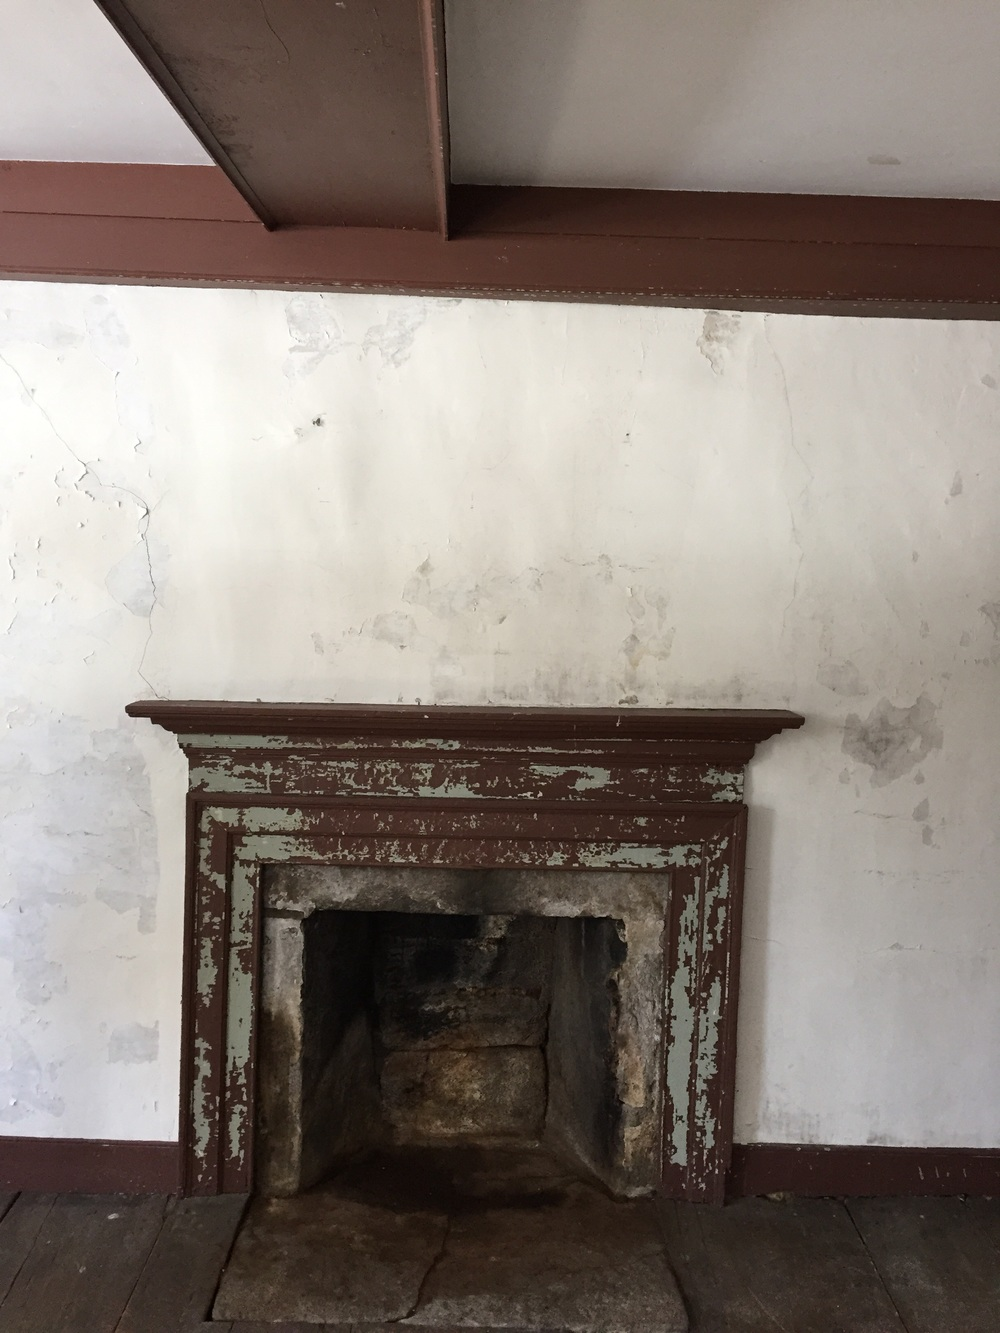 A fireplace in the home